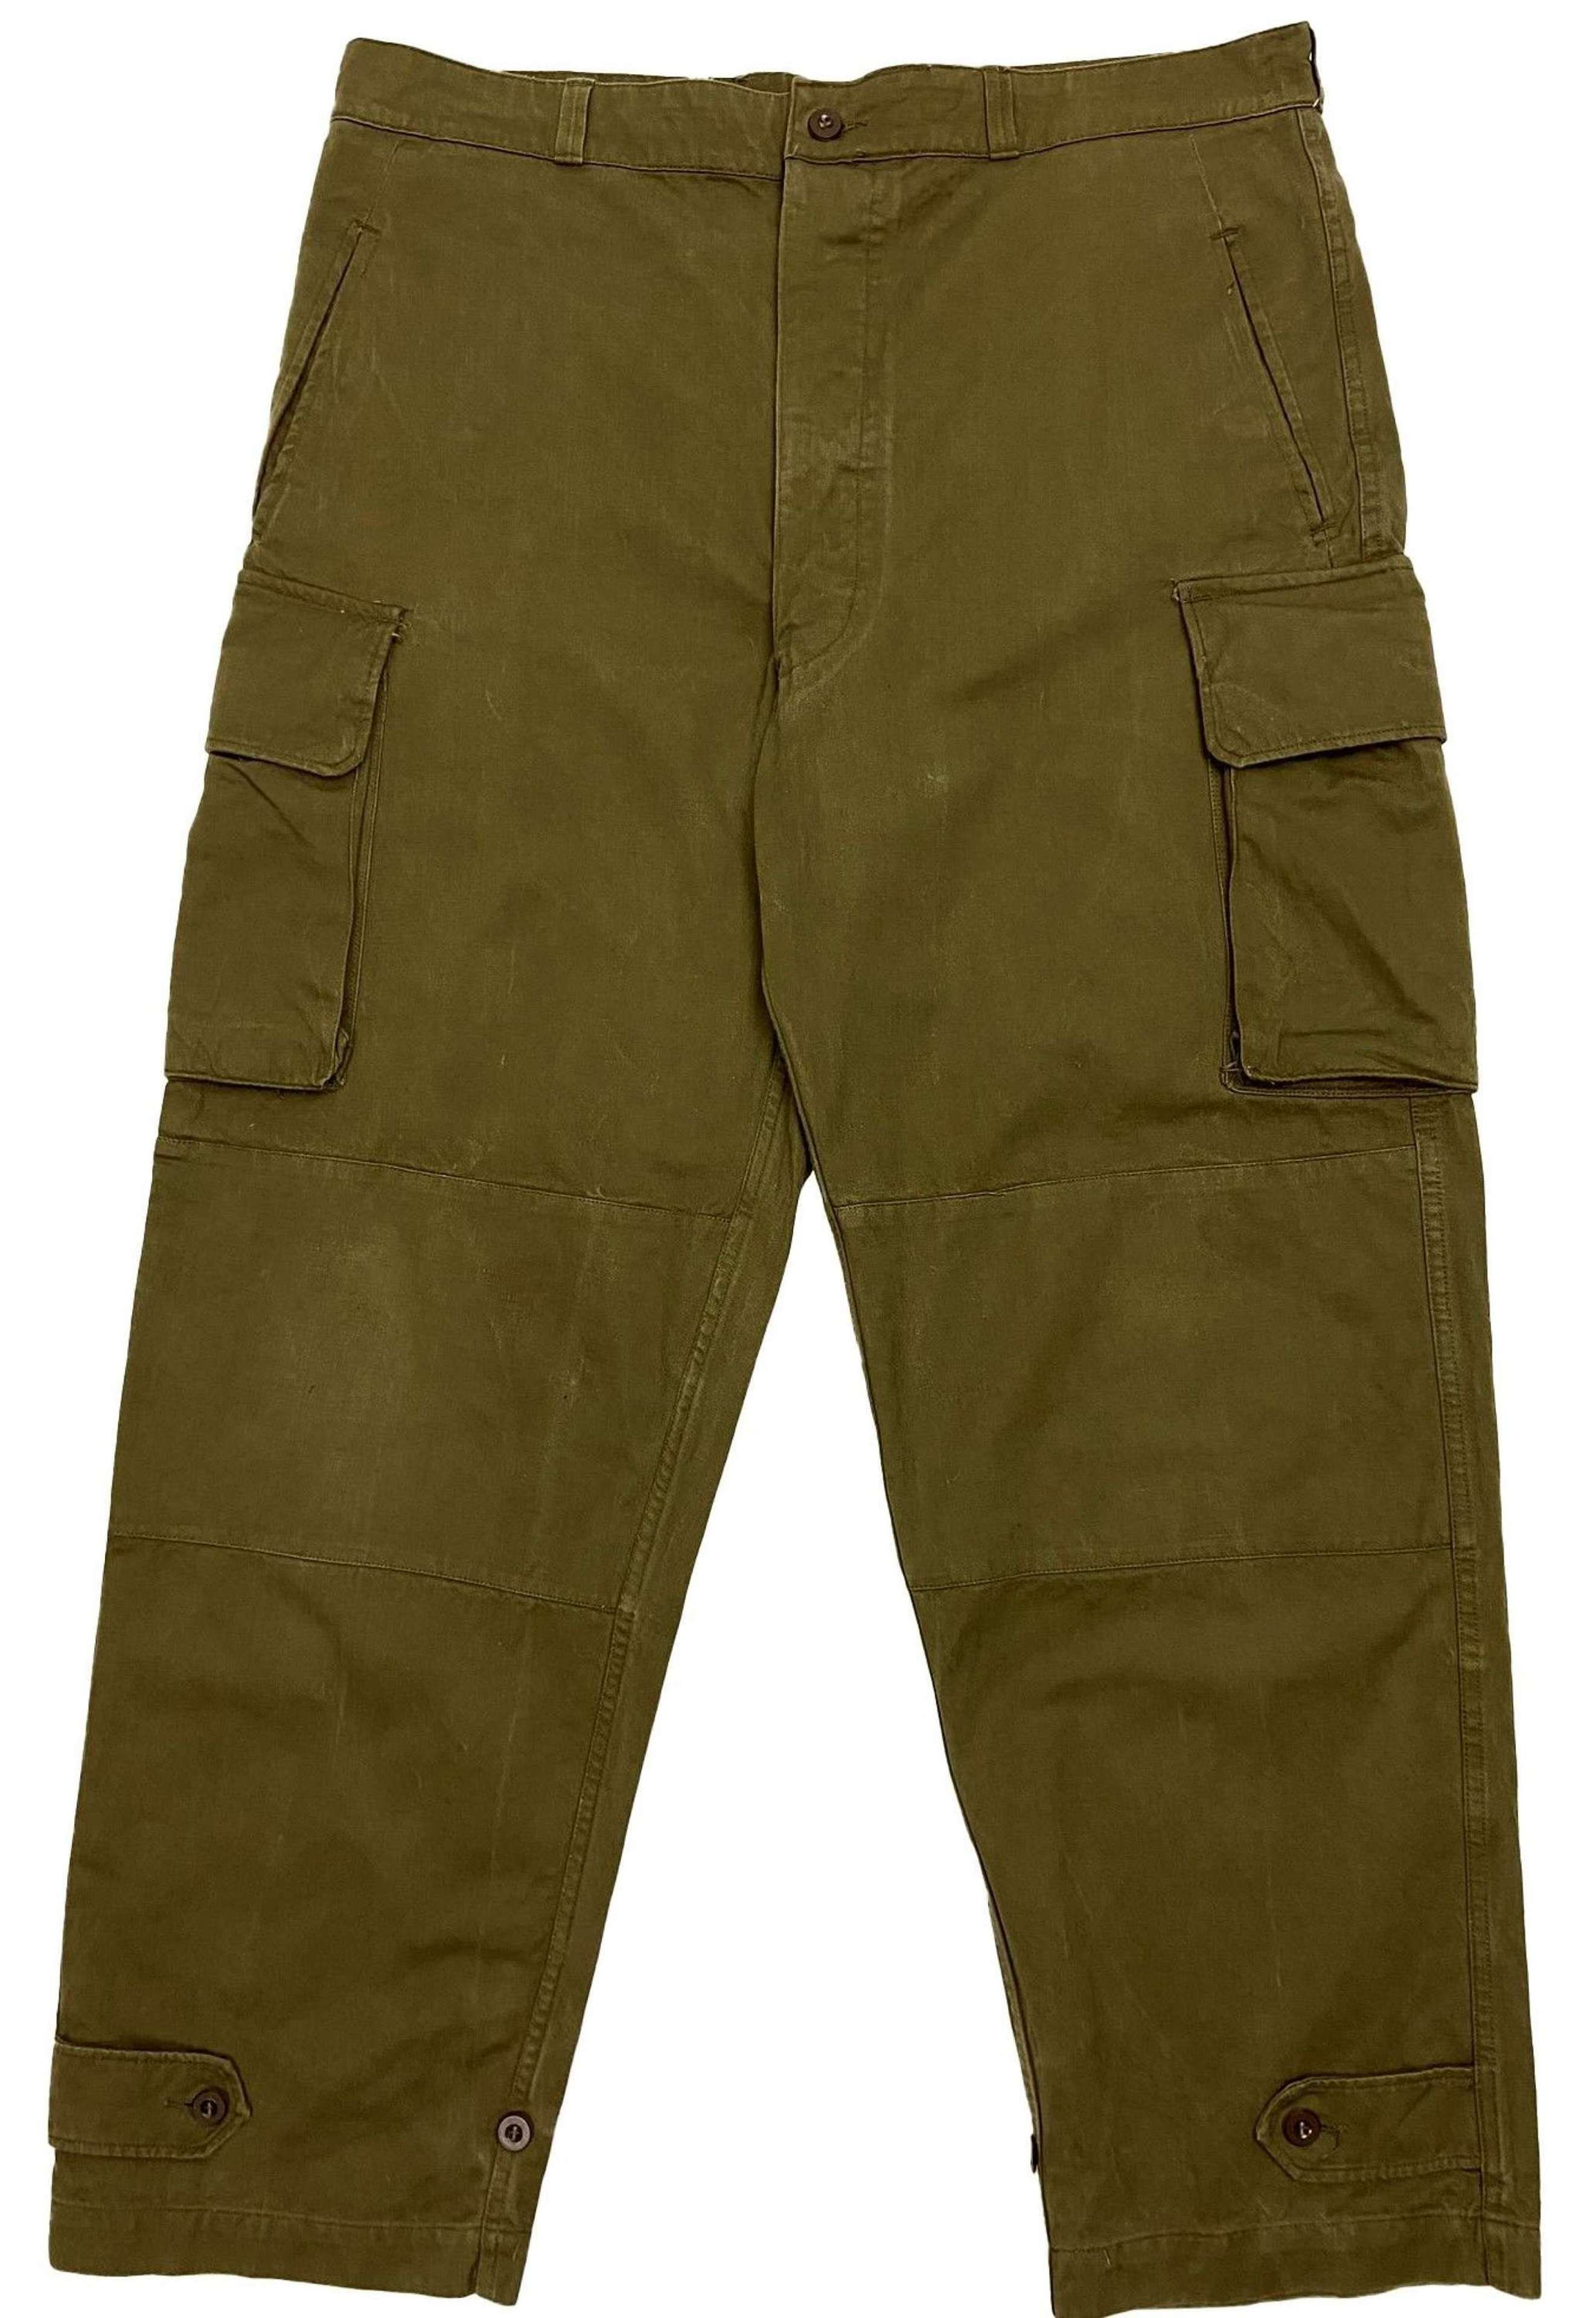 Original 1950s French Army M47 Trousers